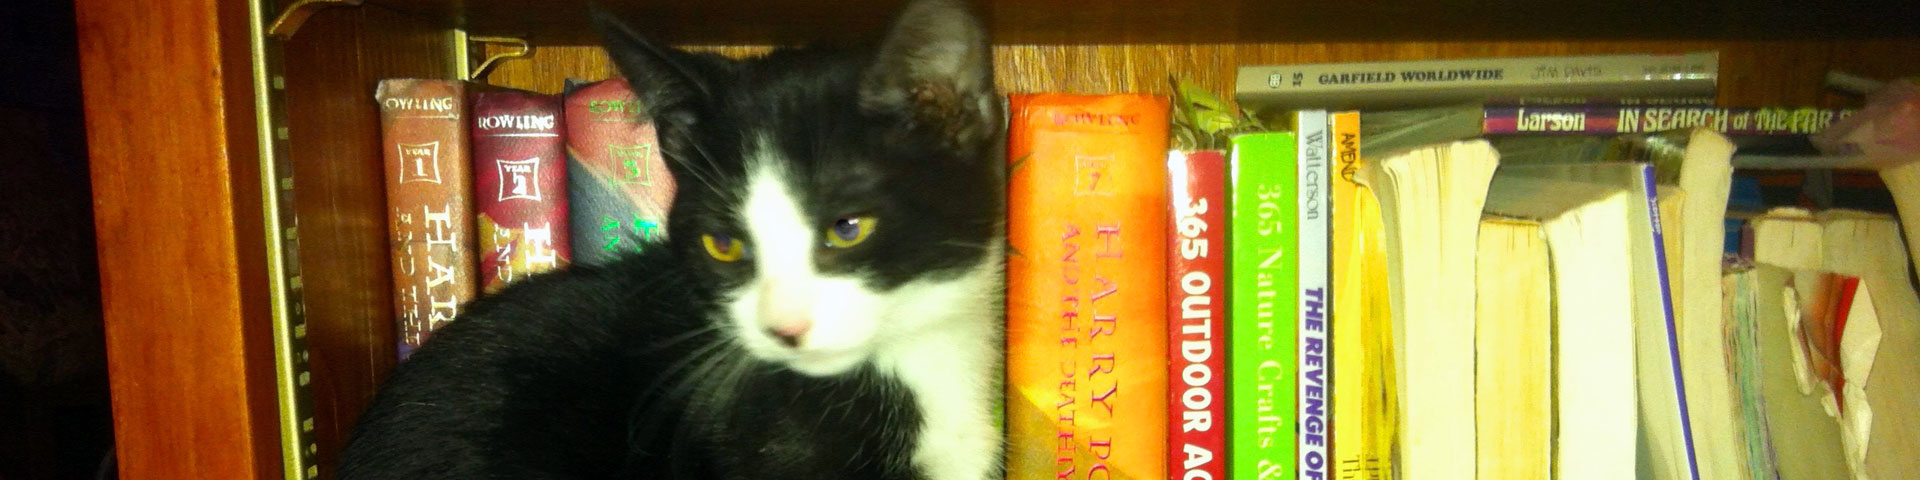 A black-and-white kitten sits on a bookshelf.